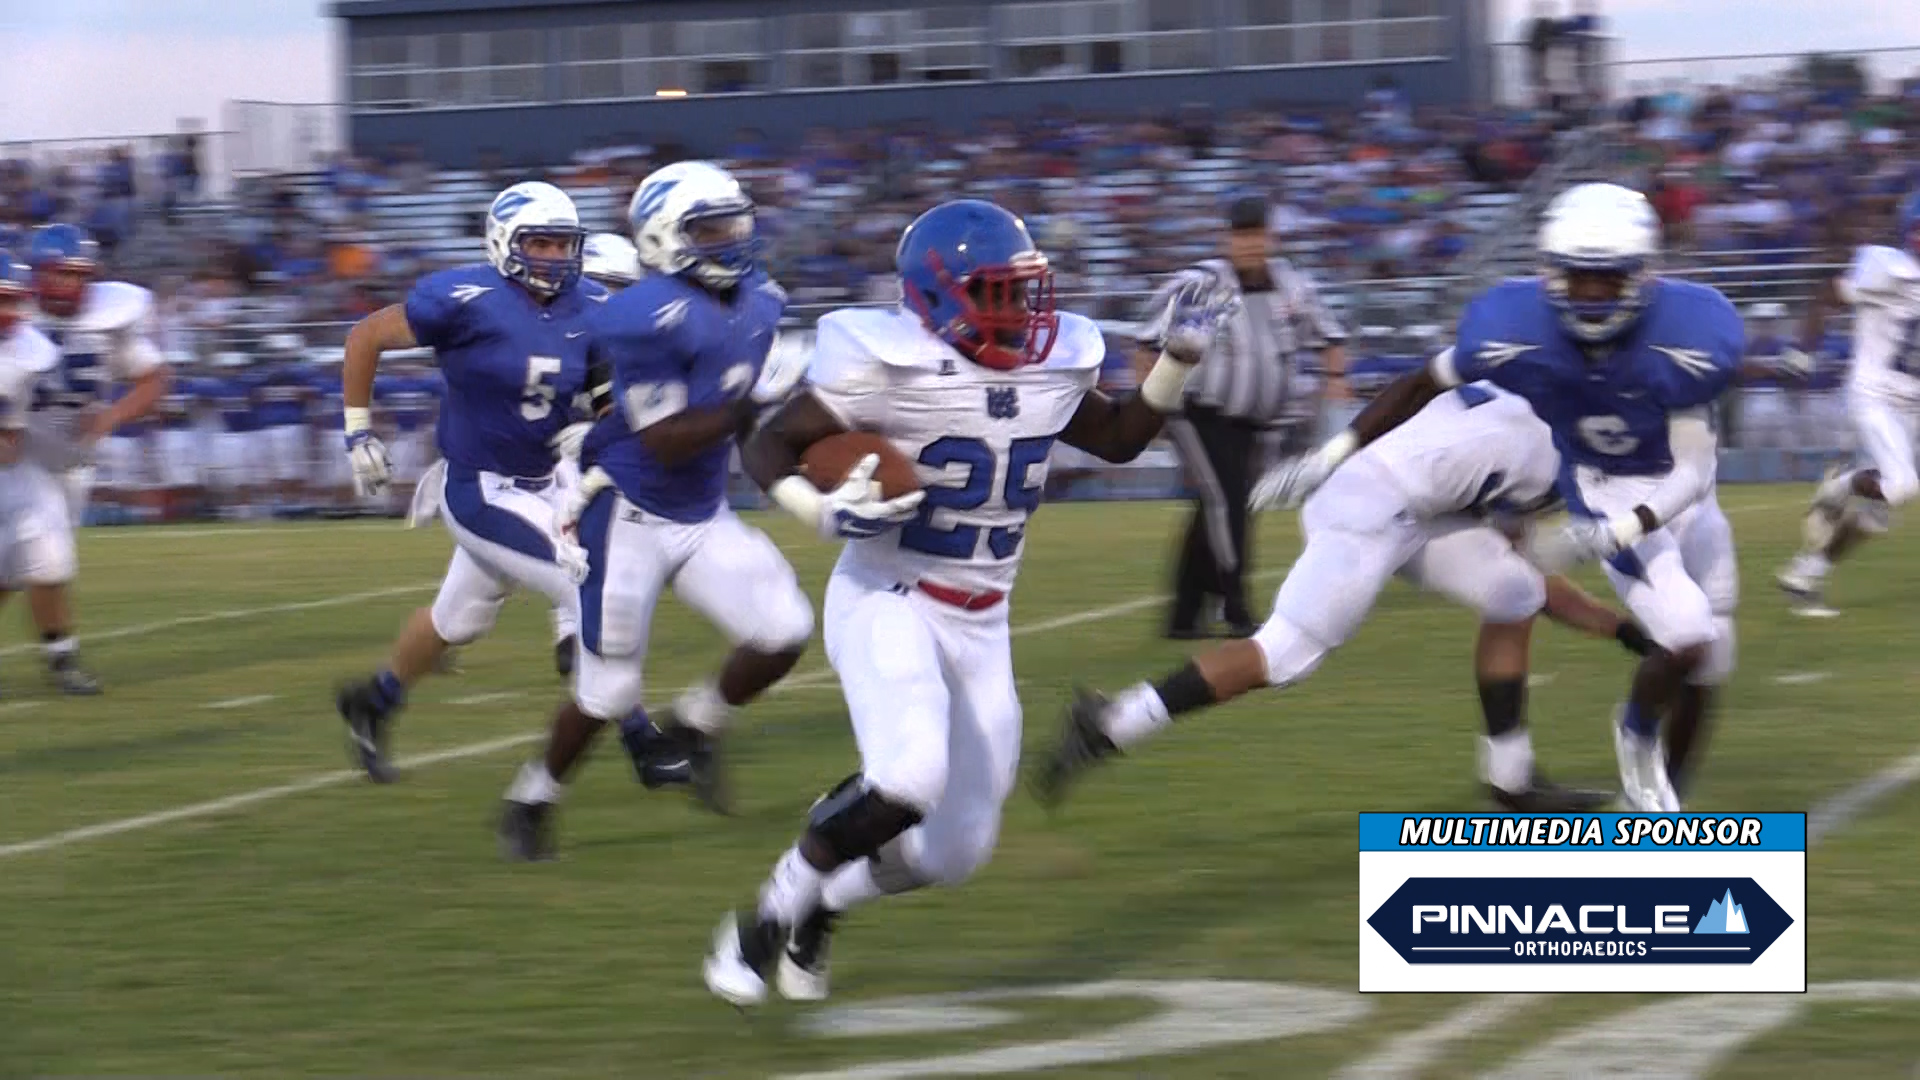 Highlights from the Warren County-Lebanon game